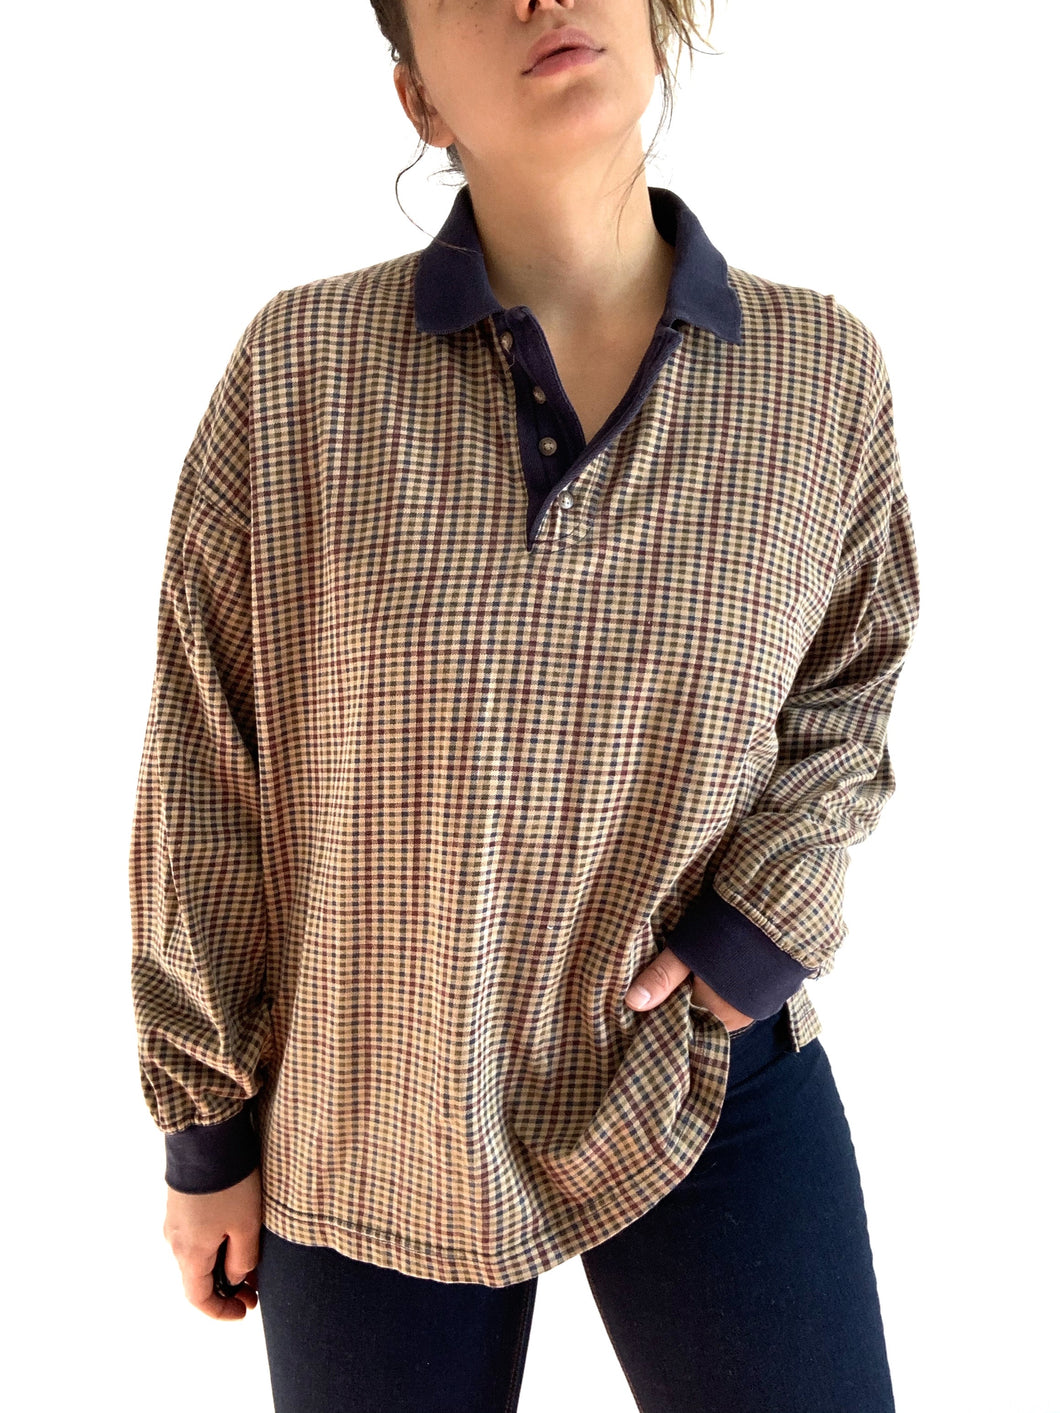 Vintage 1990s Plaid Long Sleeve